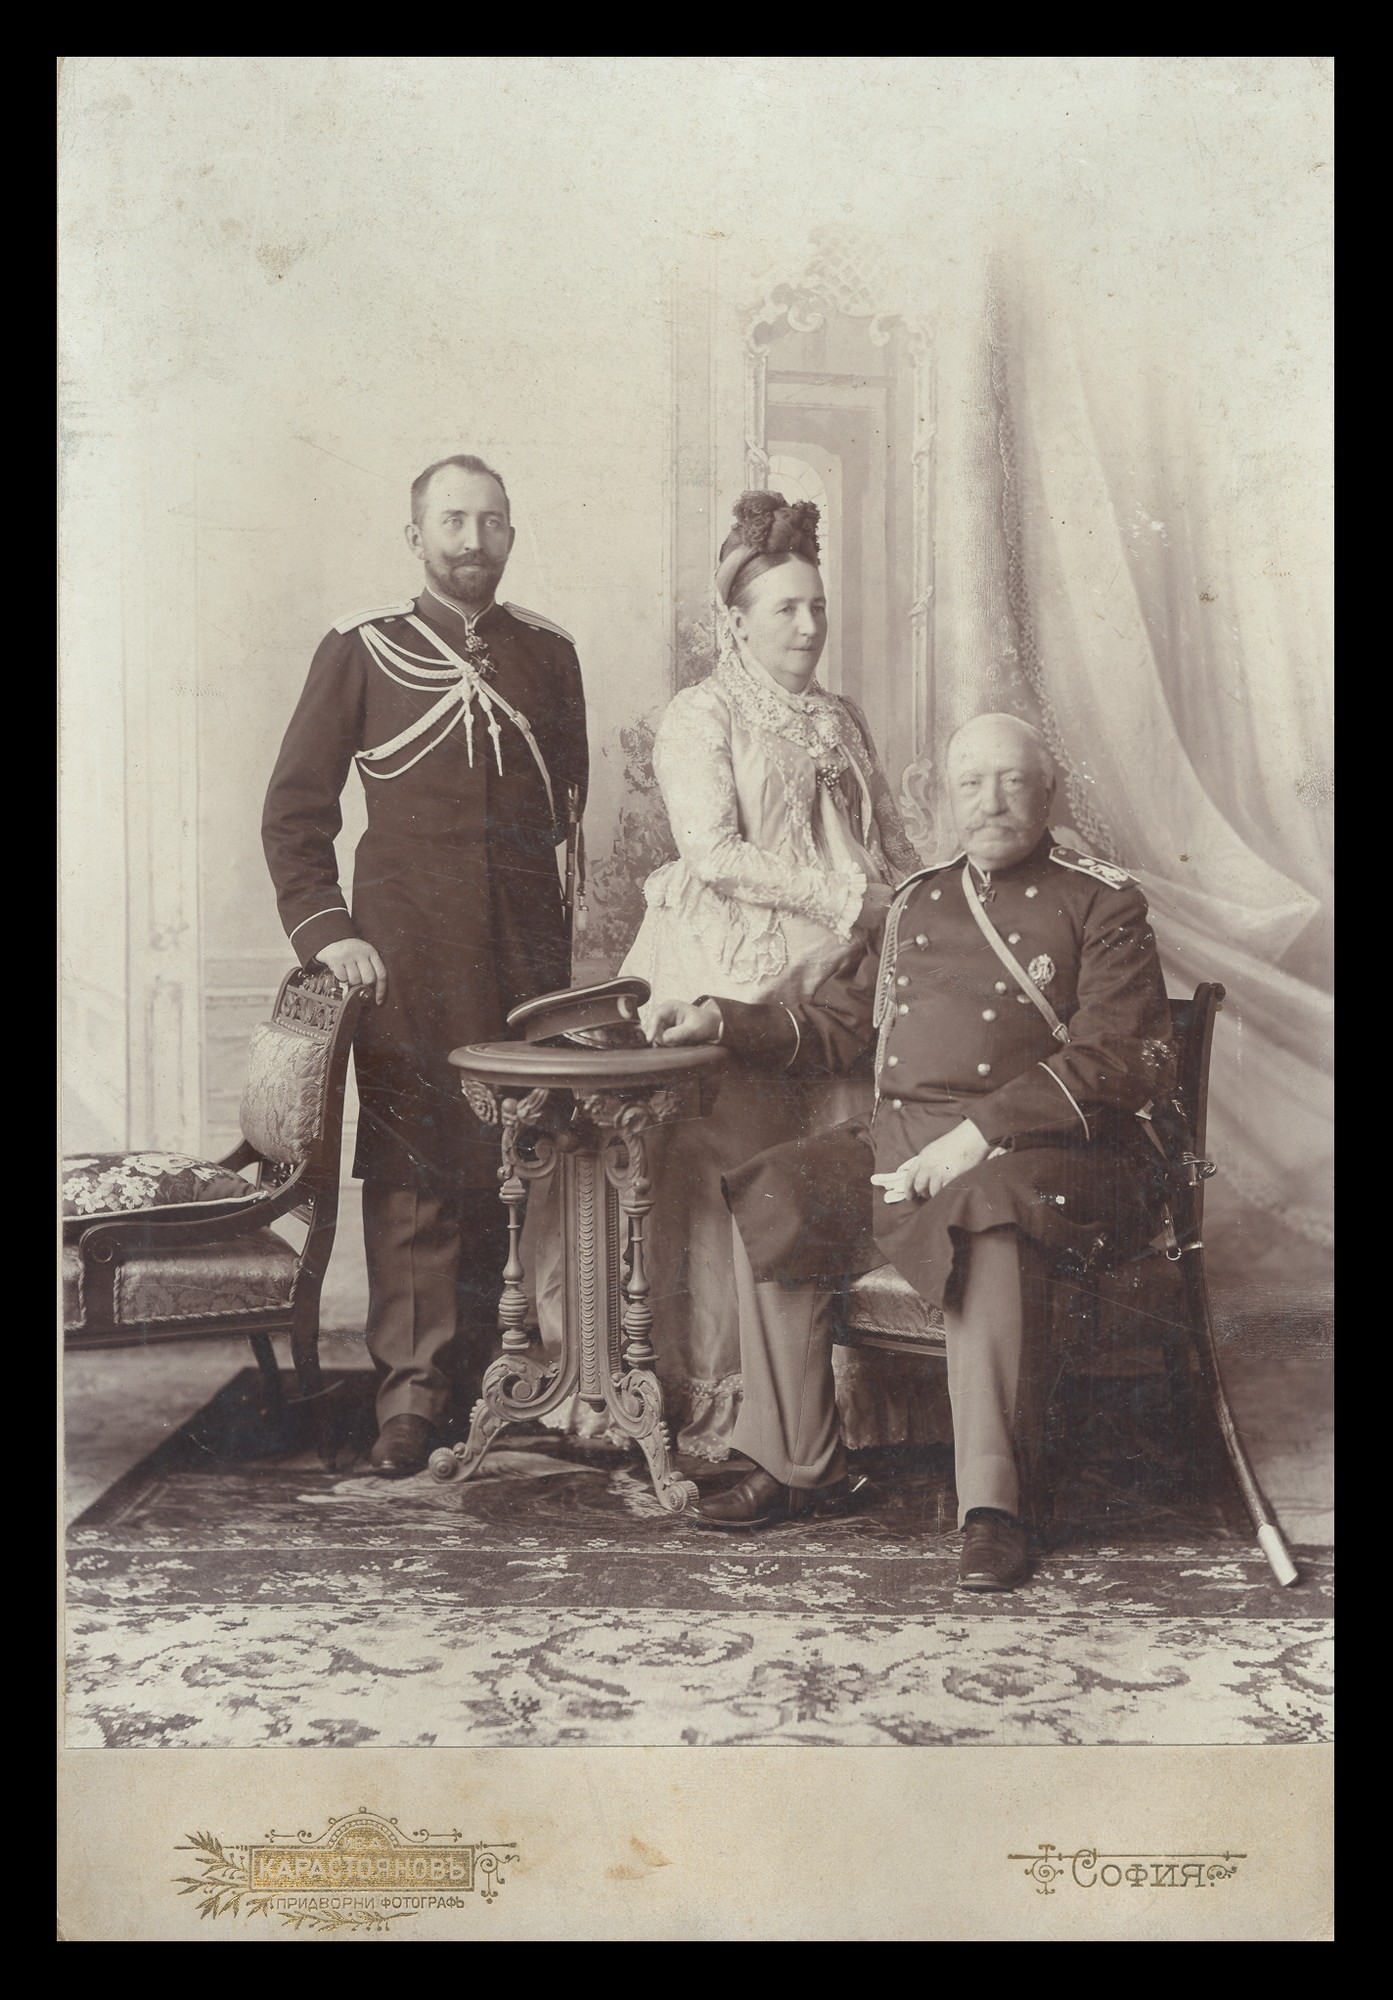 Studio portrait of Count Nikolai P. Ignatyev with his wife Countess Ekaterina L. Ignatyeva and their son Count Leopold N. Ignatyev, © National Museum of Military History Sofia